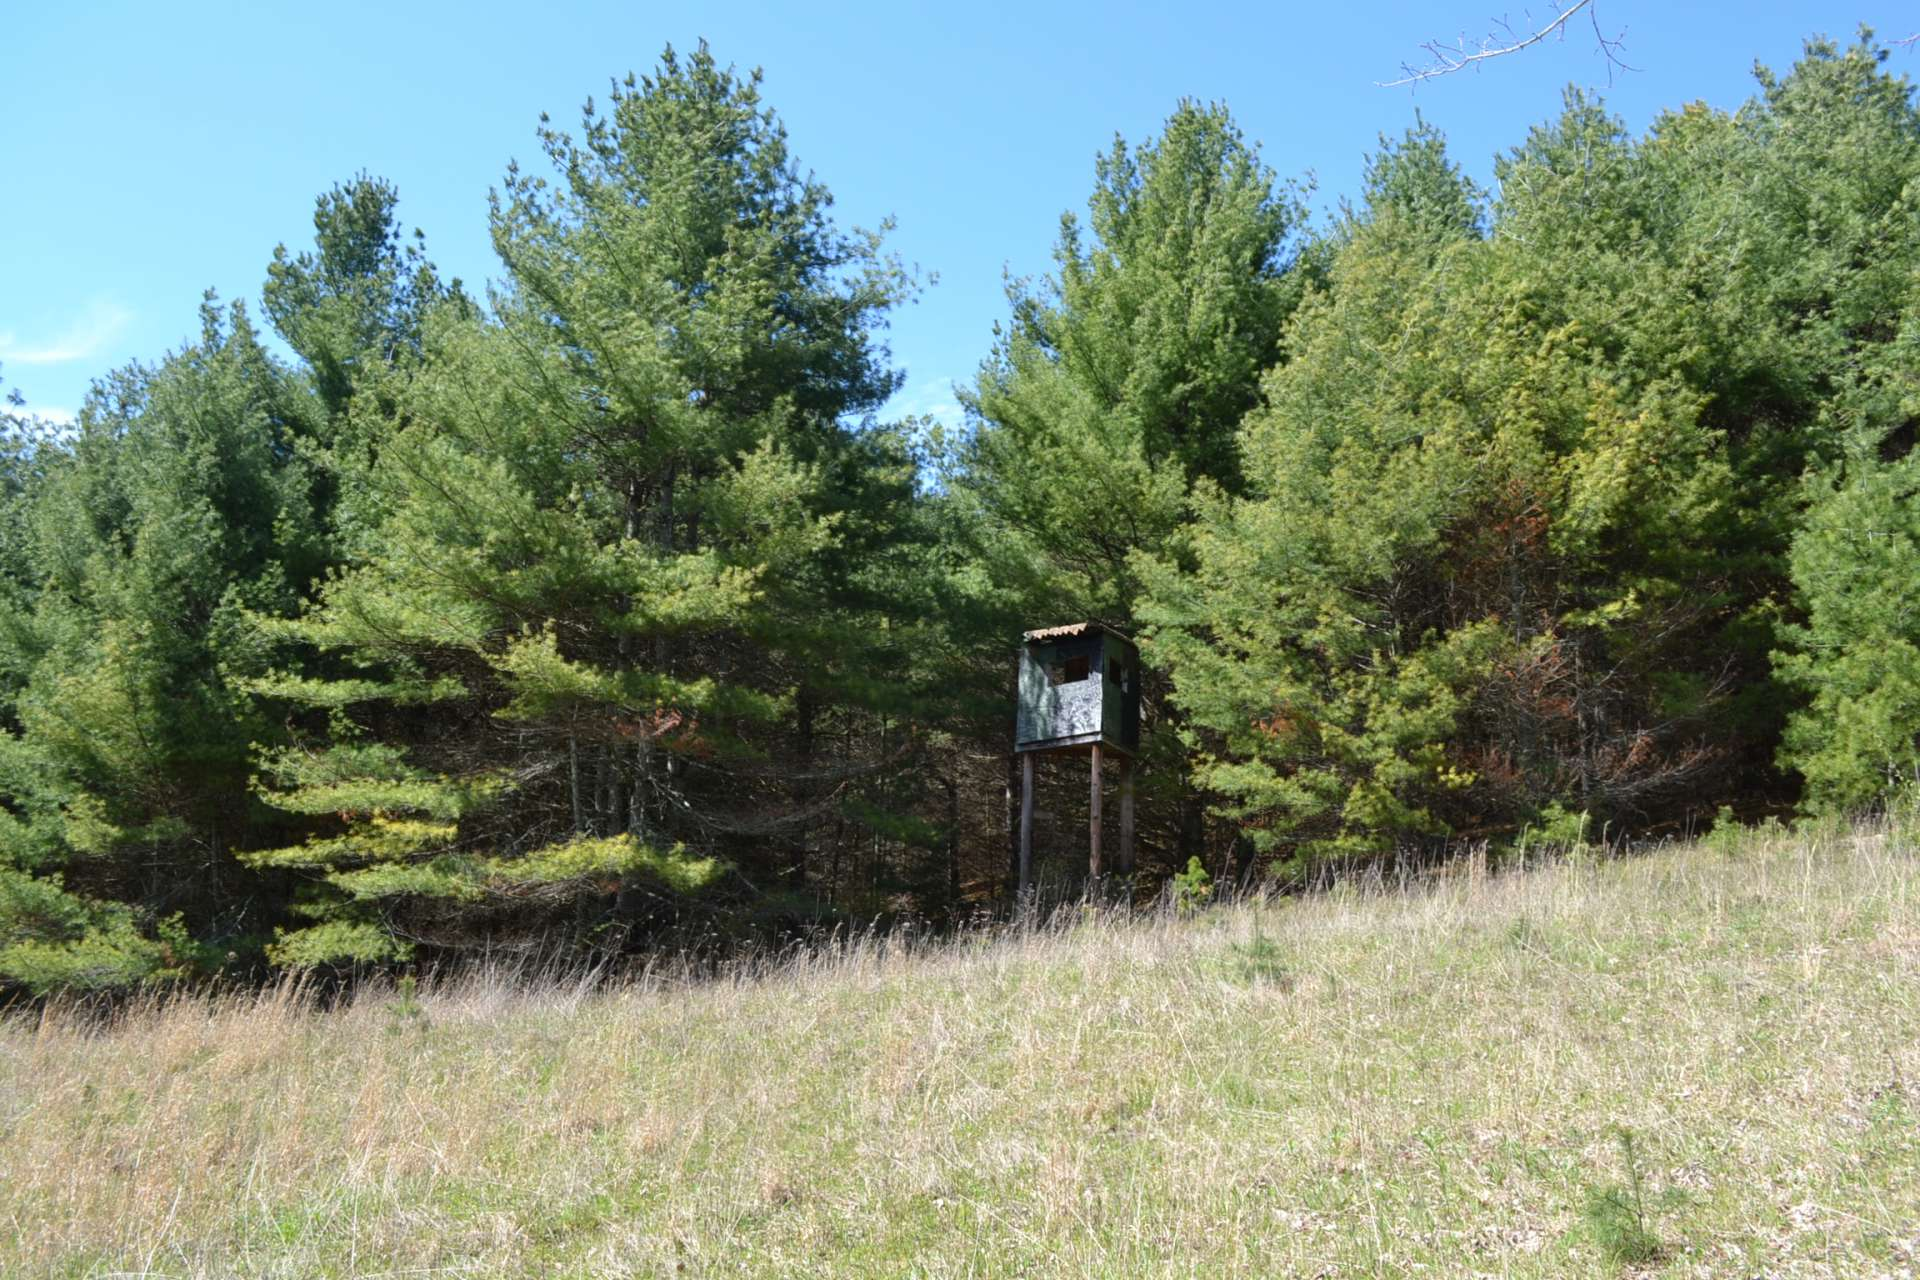 This is where you will find the first of three deer stands in place on the property.  Open fields buffered by woodlands is a great opportunity for bird hunting.